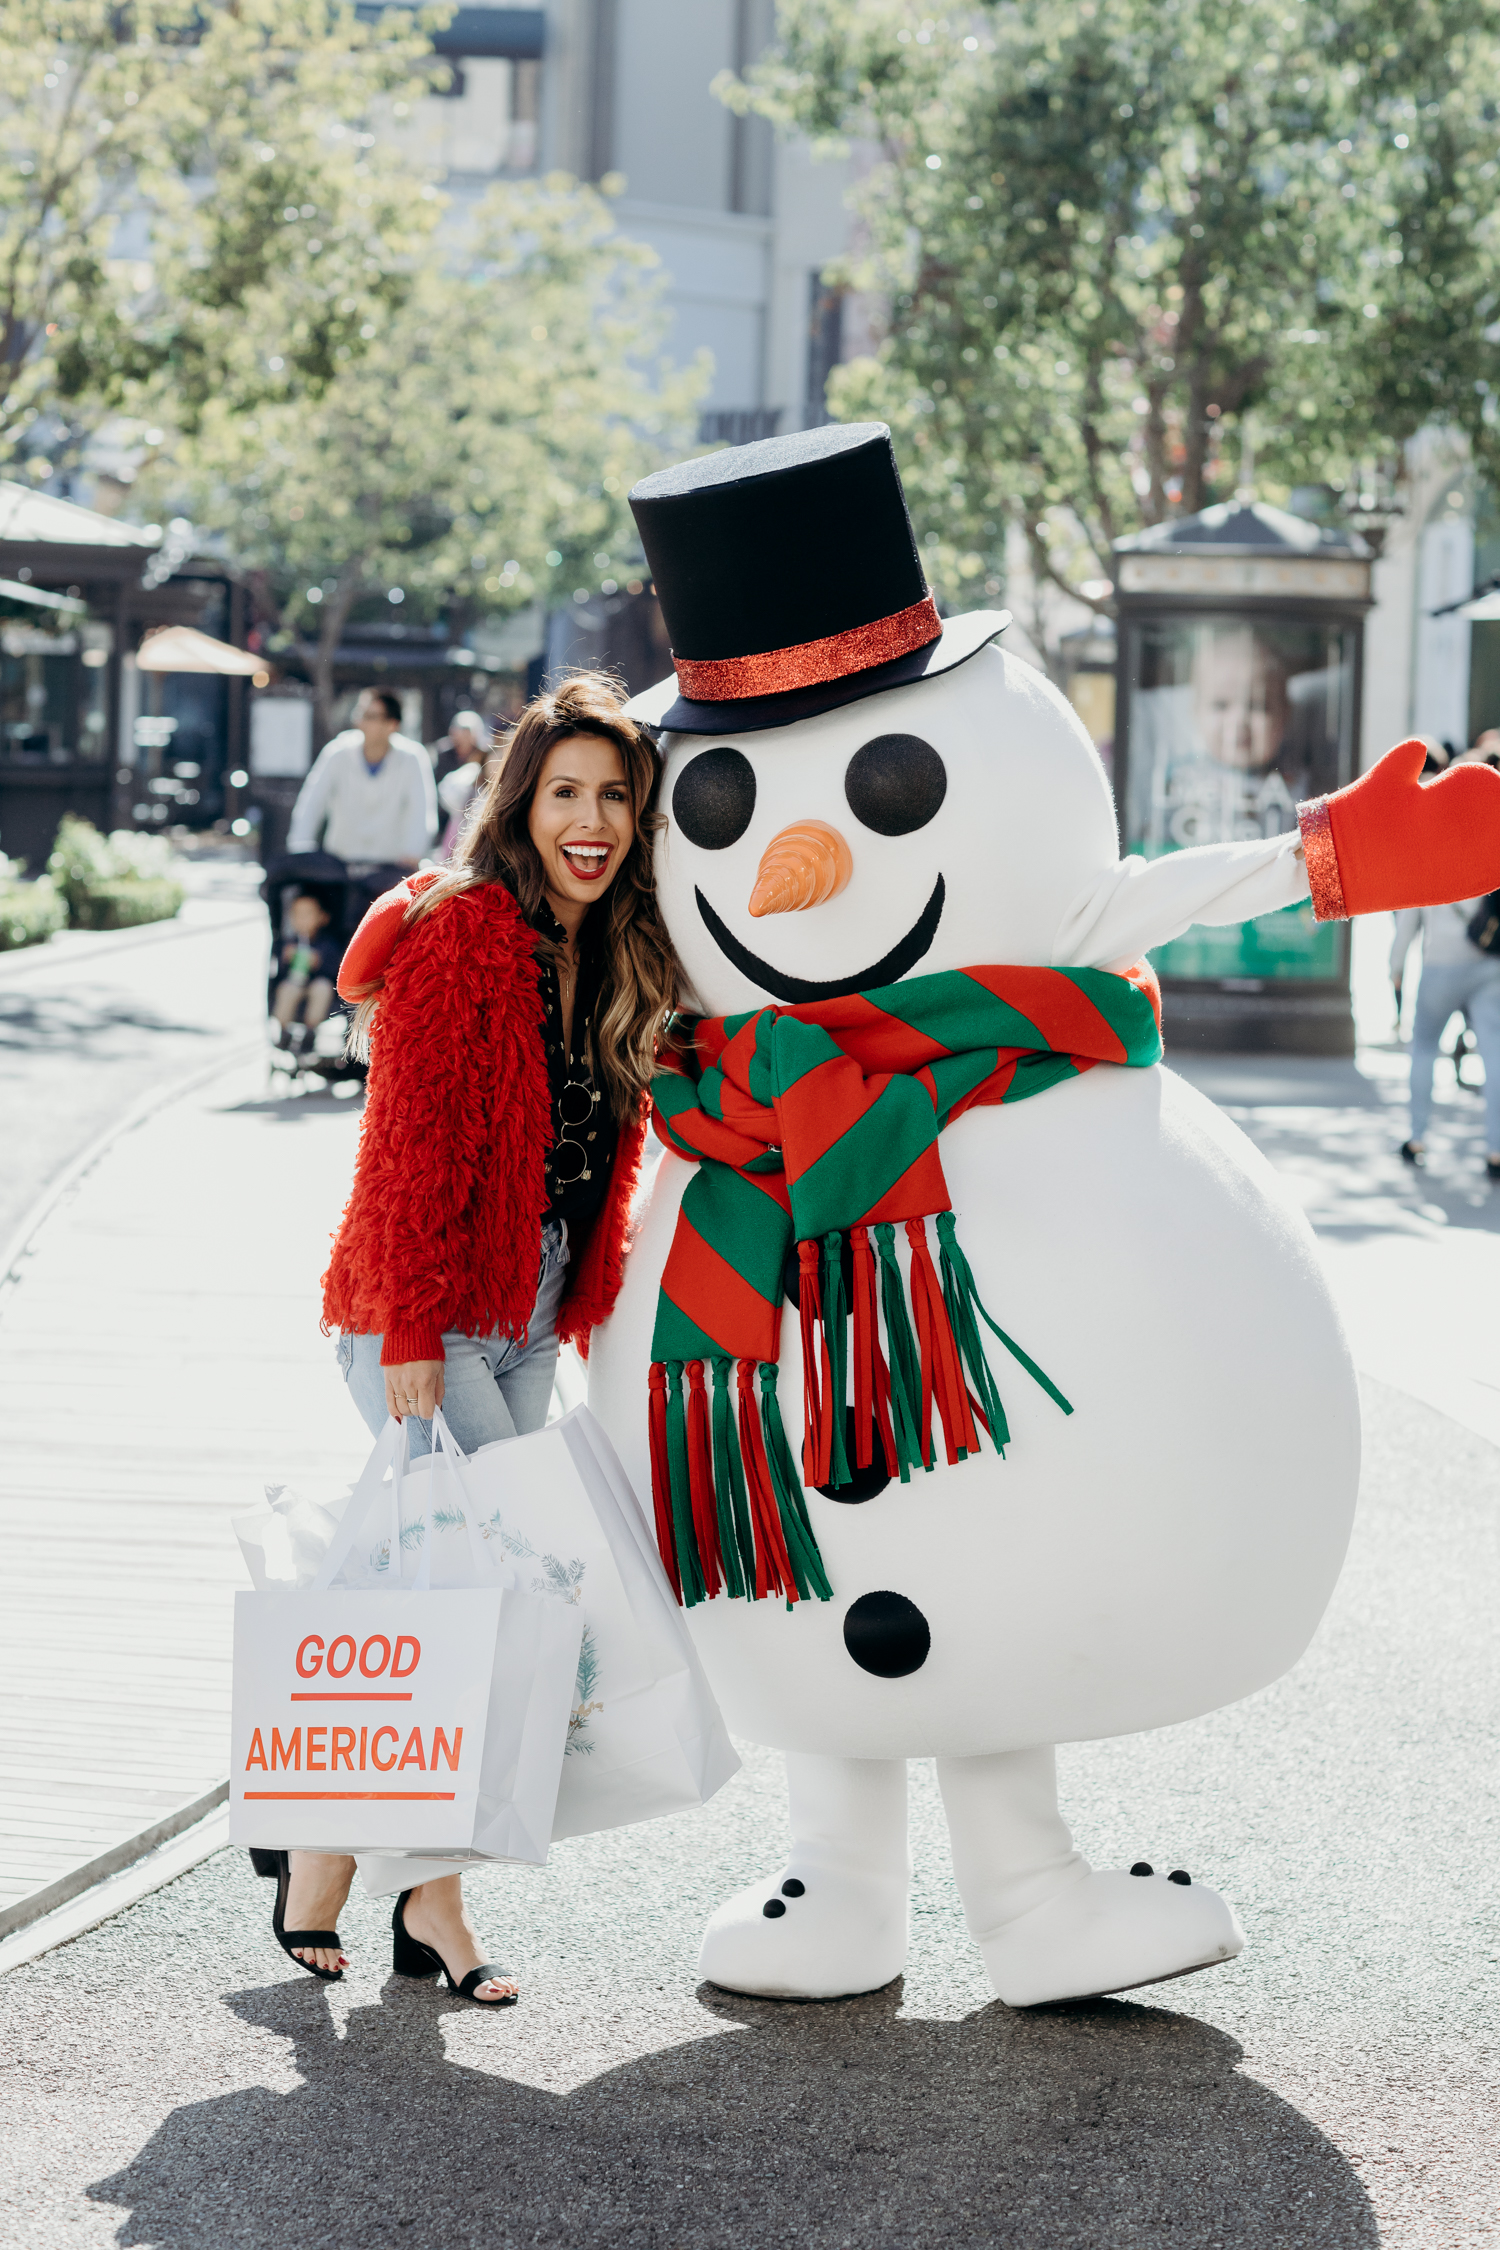 Fun Shopping at the Americana in Glendale - Everyday Pursuits